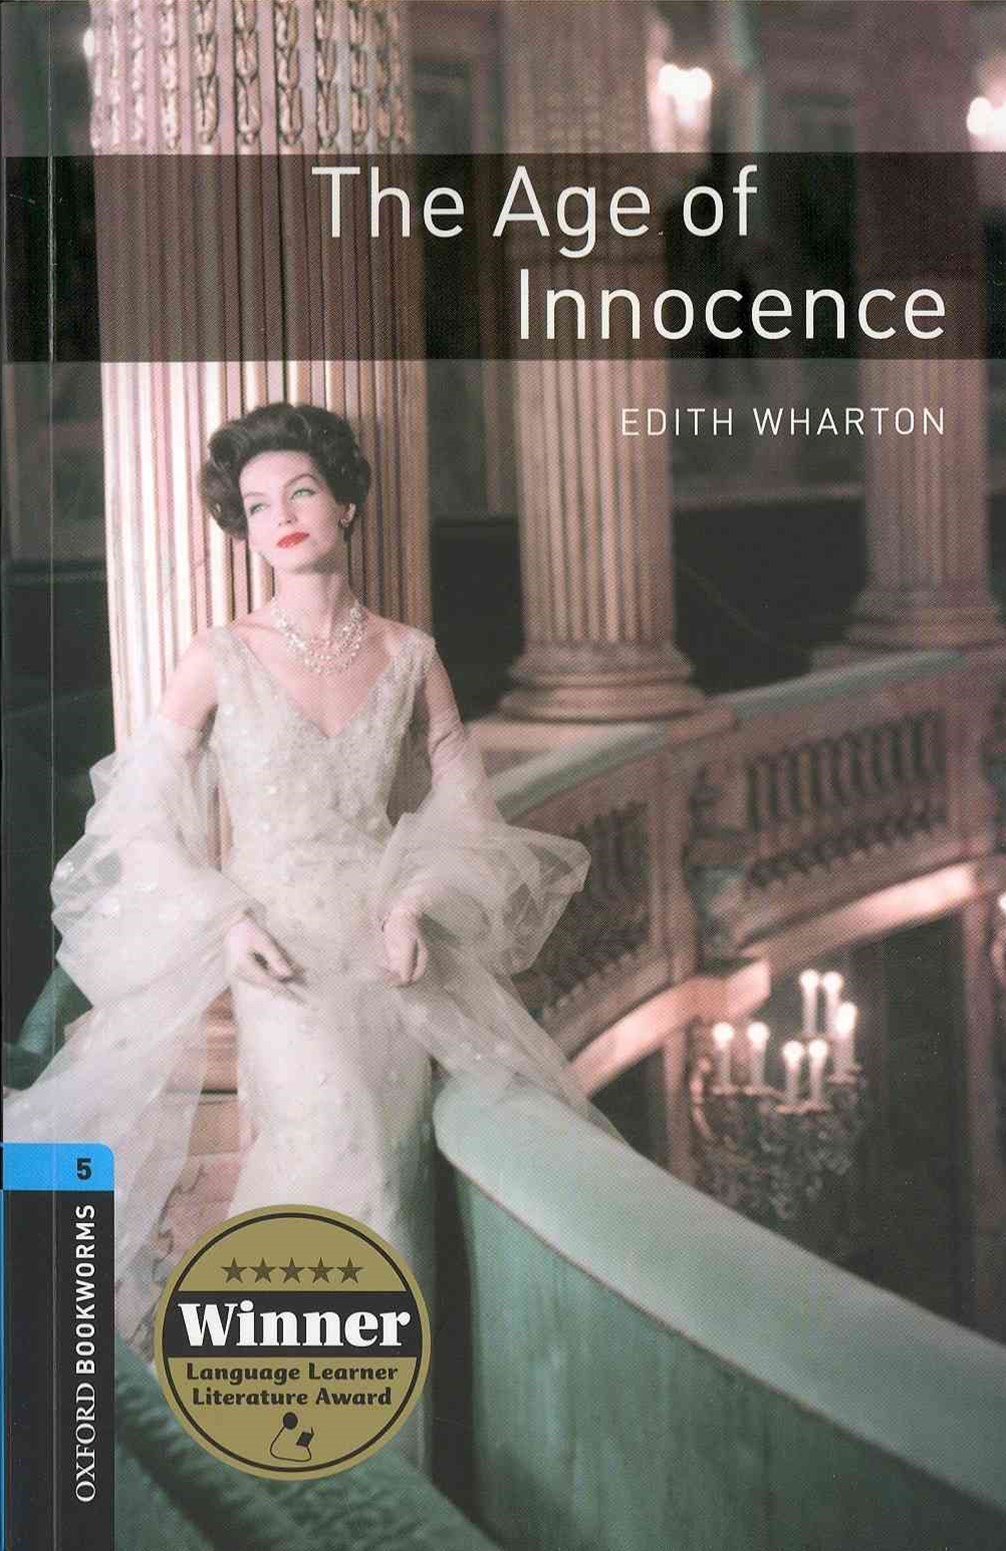 Oxford Bookworms Library Level 5 The Age of Innocence